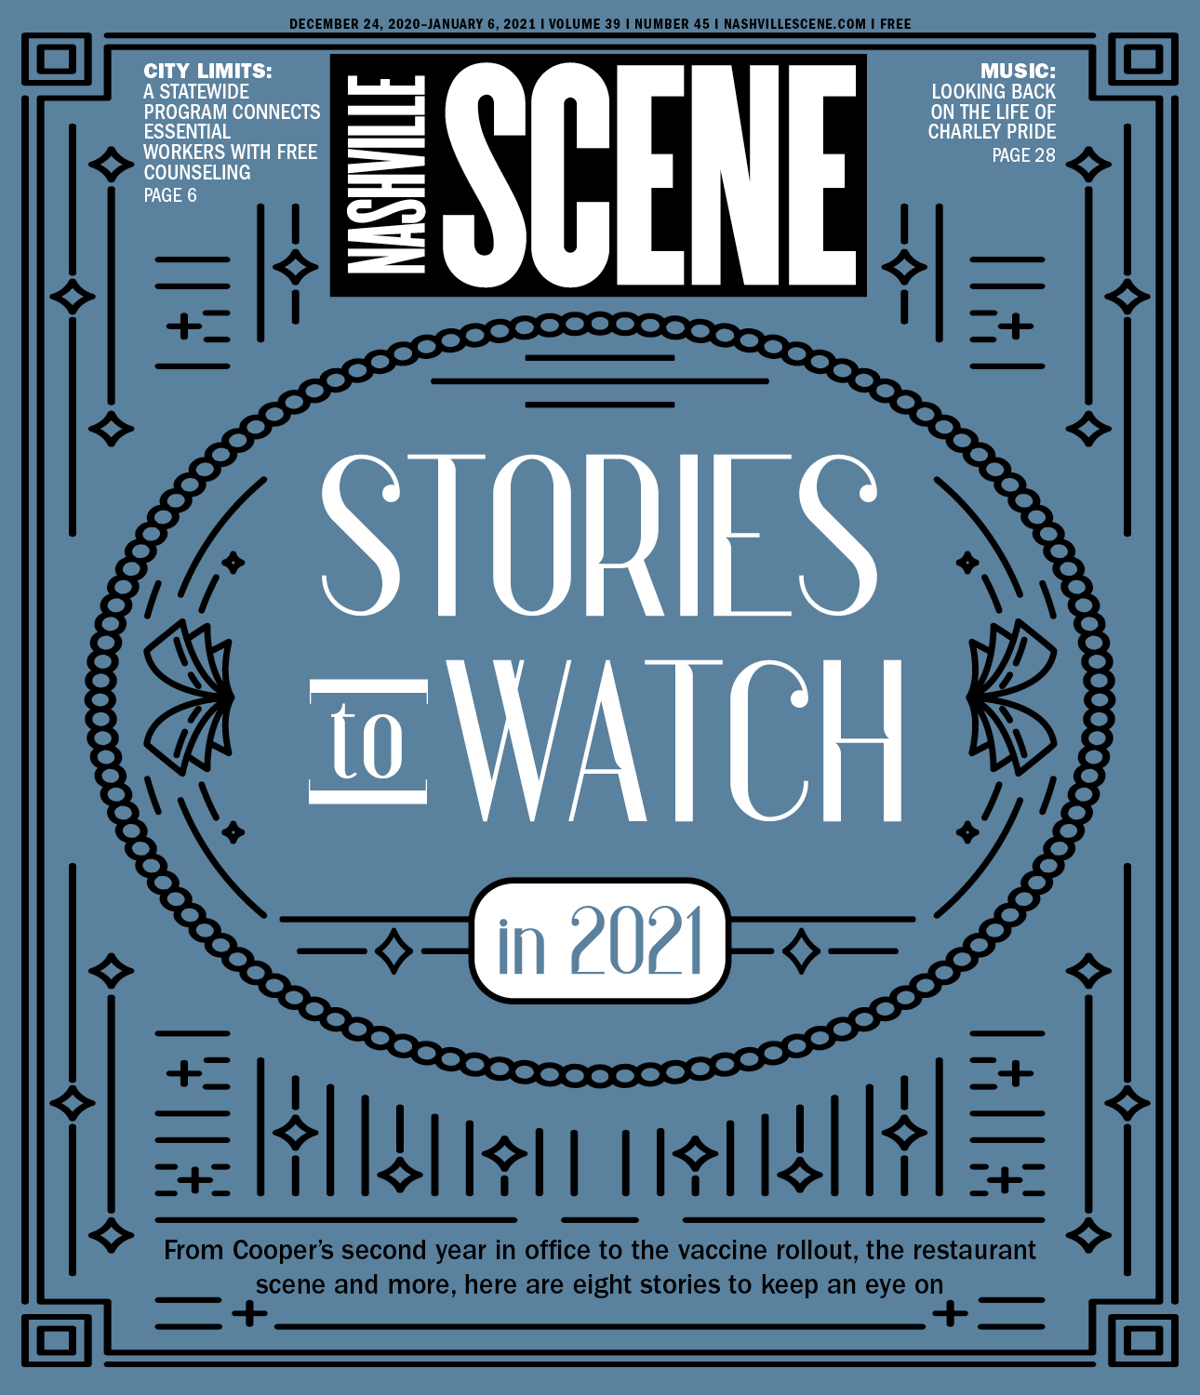 Stories to Watch in 2021